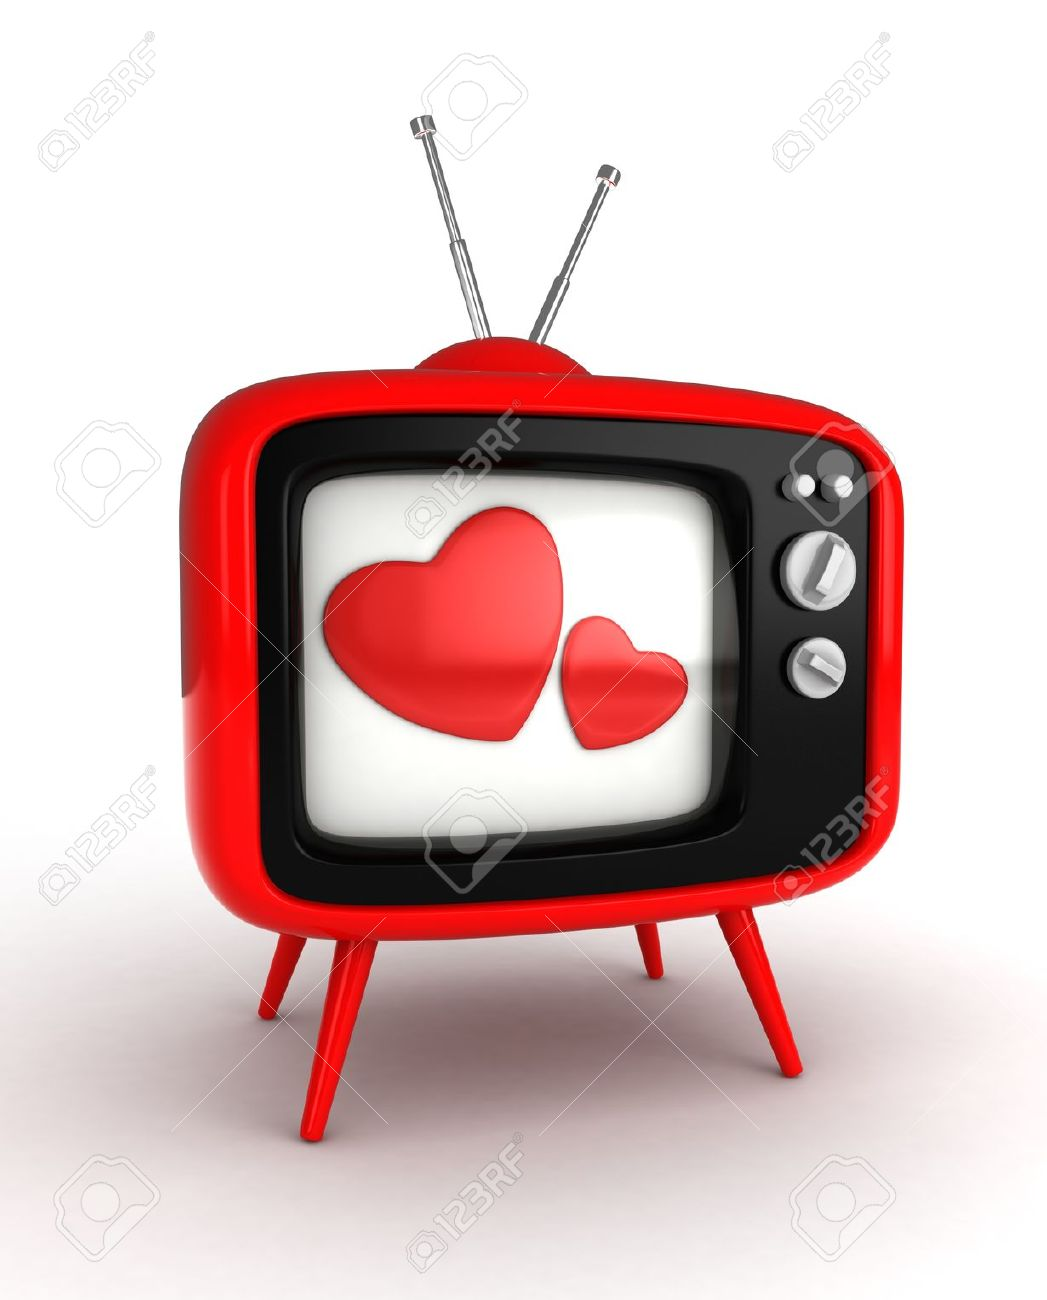 Flashing heart clipart image transparent stock 3D Illustration Of A Retro Television Set With Hearts Flashing ... image transparent stock